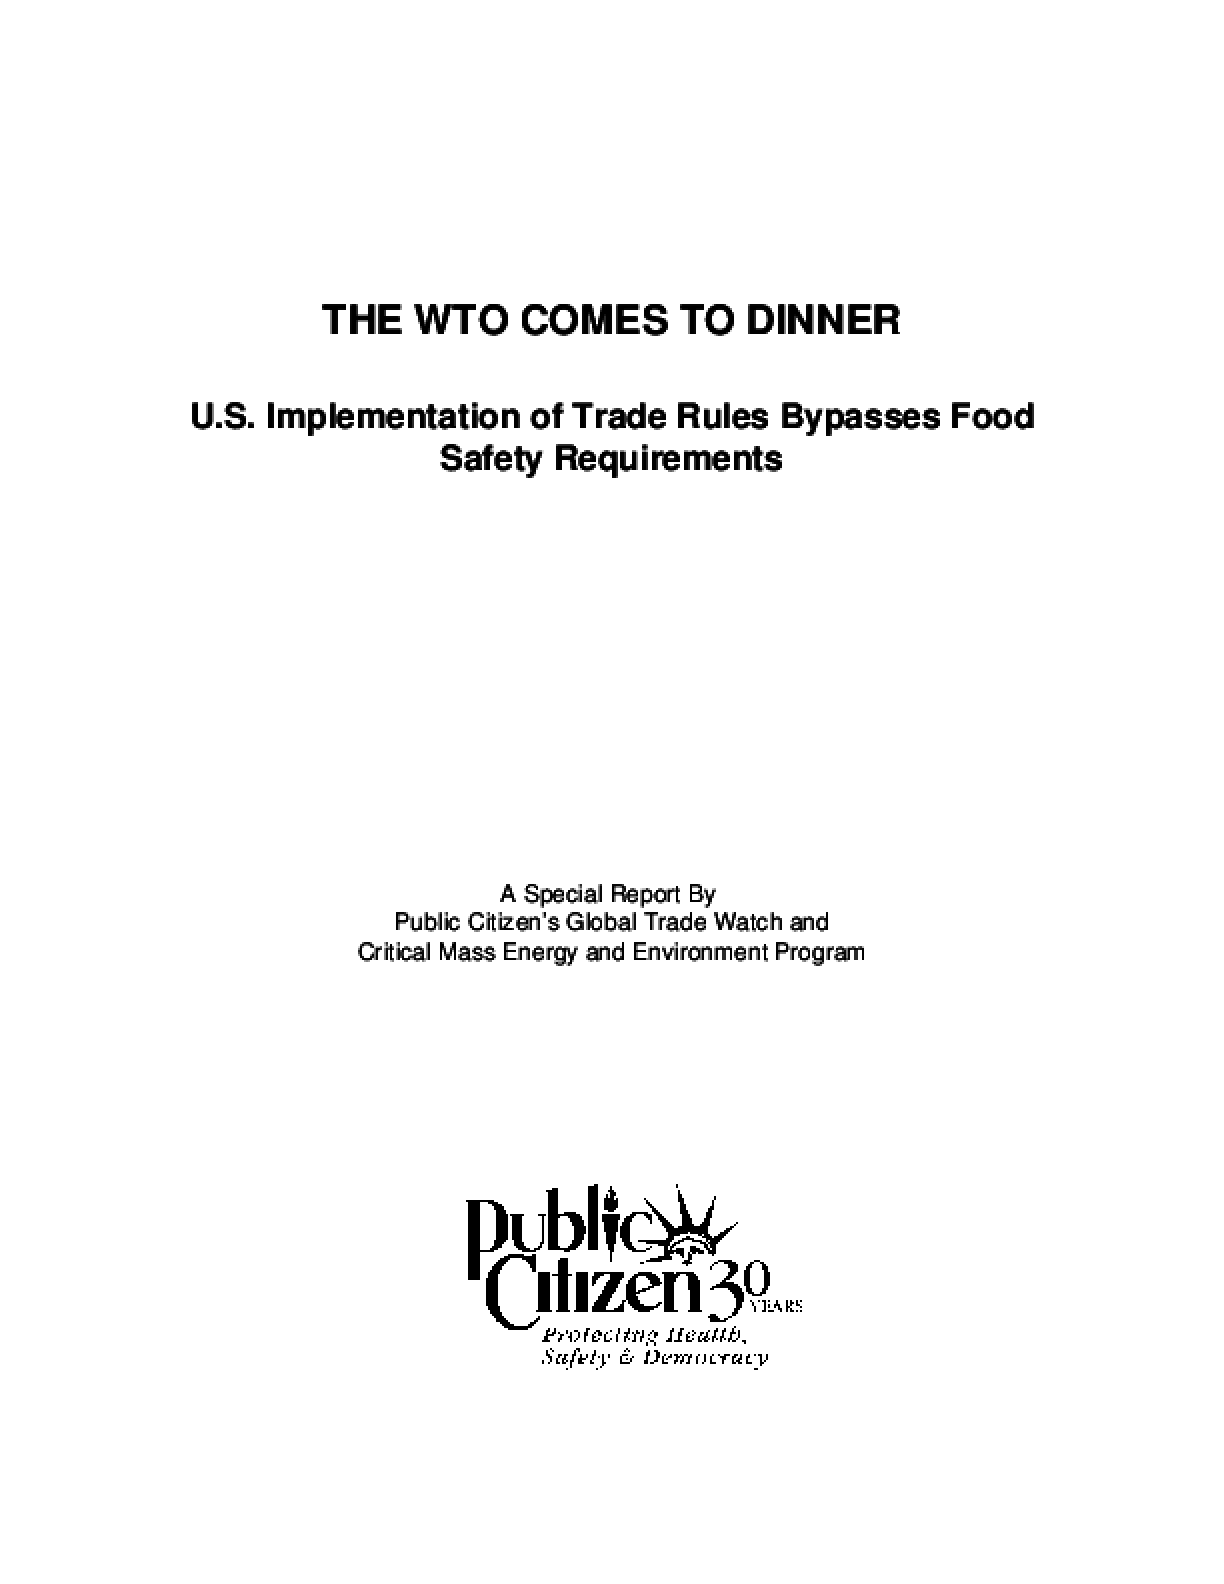 The WTO Comes to Dinner: U.S. Implementation of Trade Rules Bypasses Food Safety Requirements